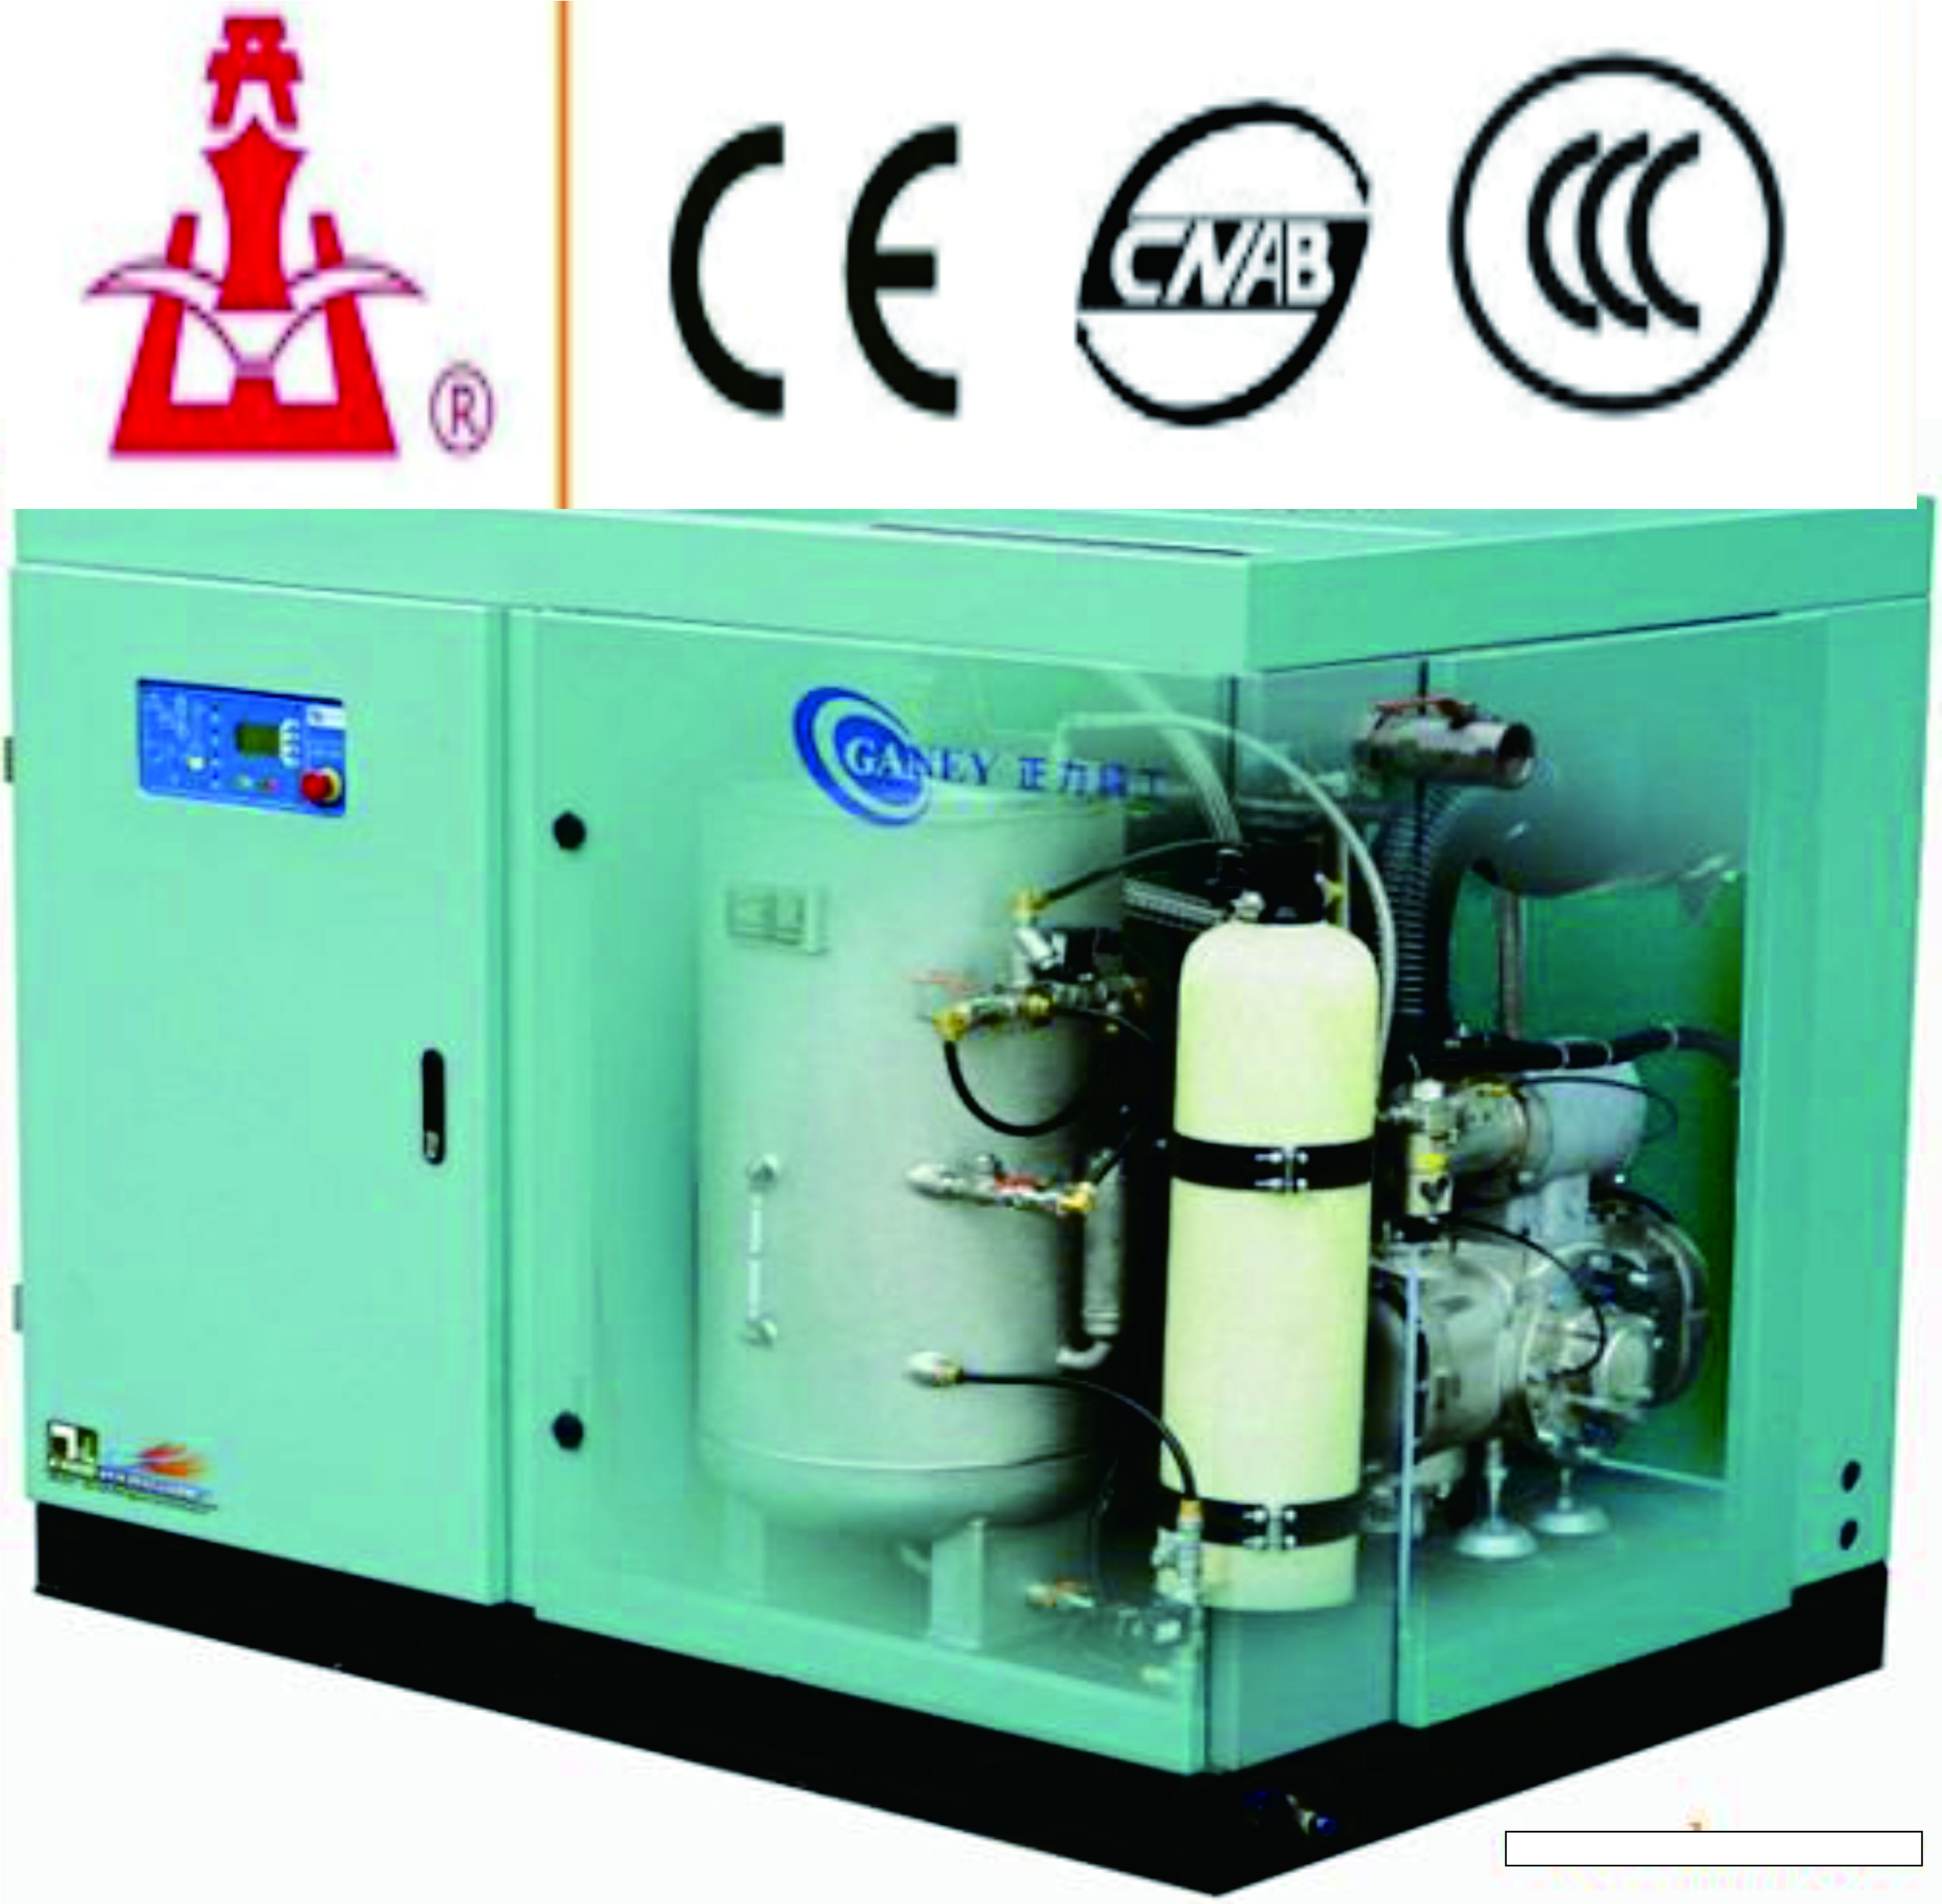 1. China'1 1st Oilfree Screw Air Compressor gets to the